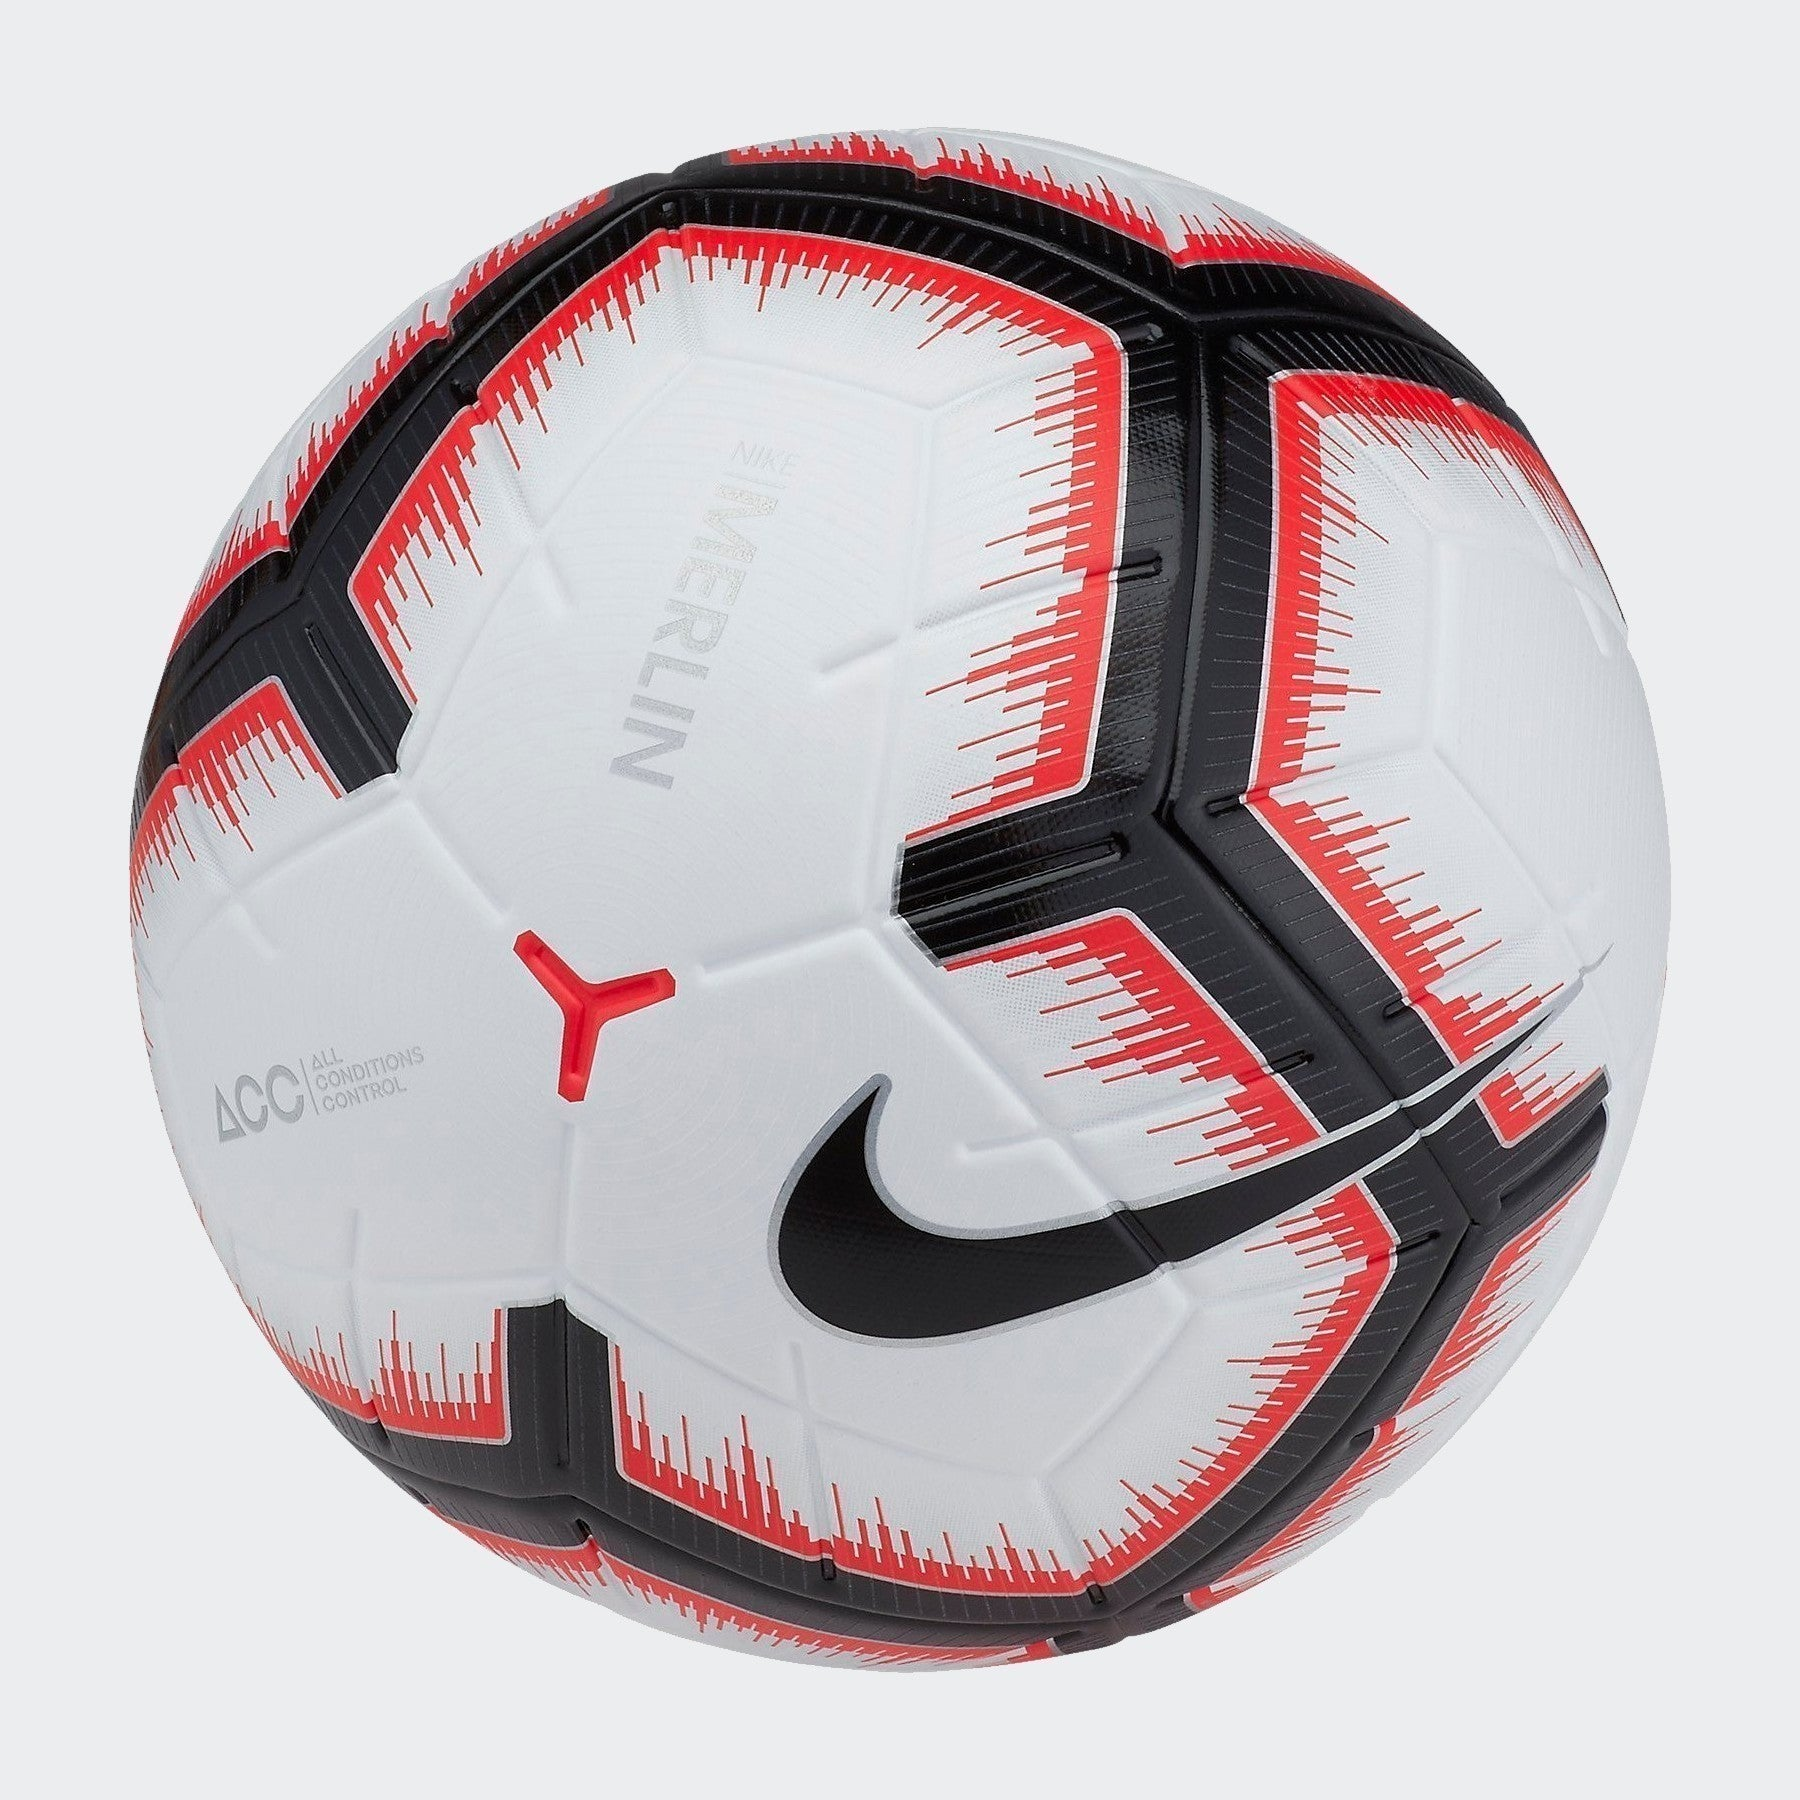 Merlin Soccer Ball - White/Bright Crimson